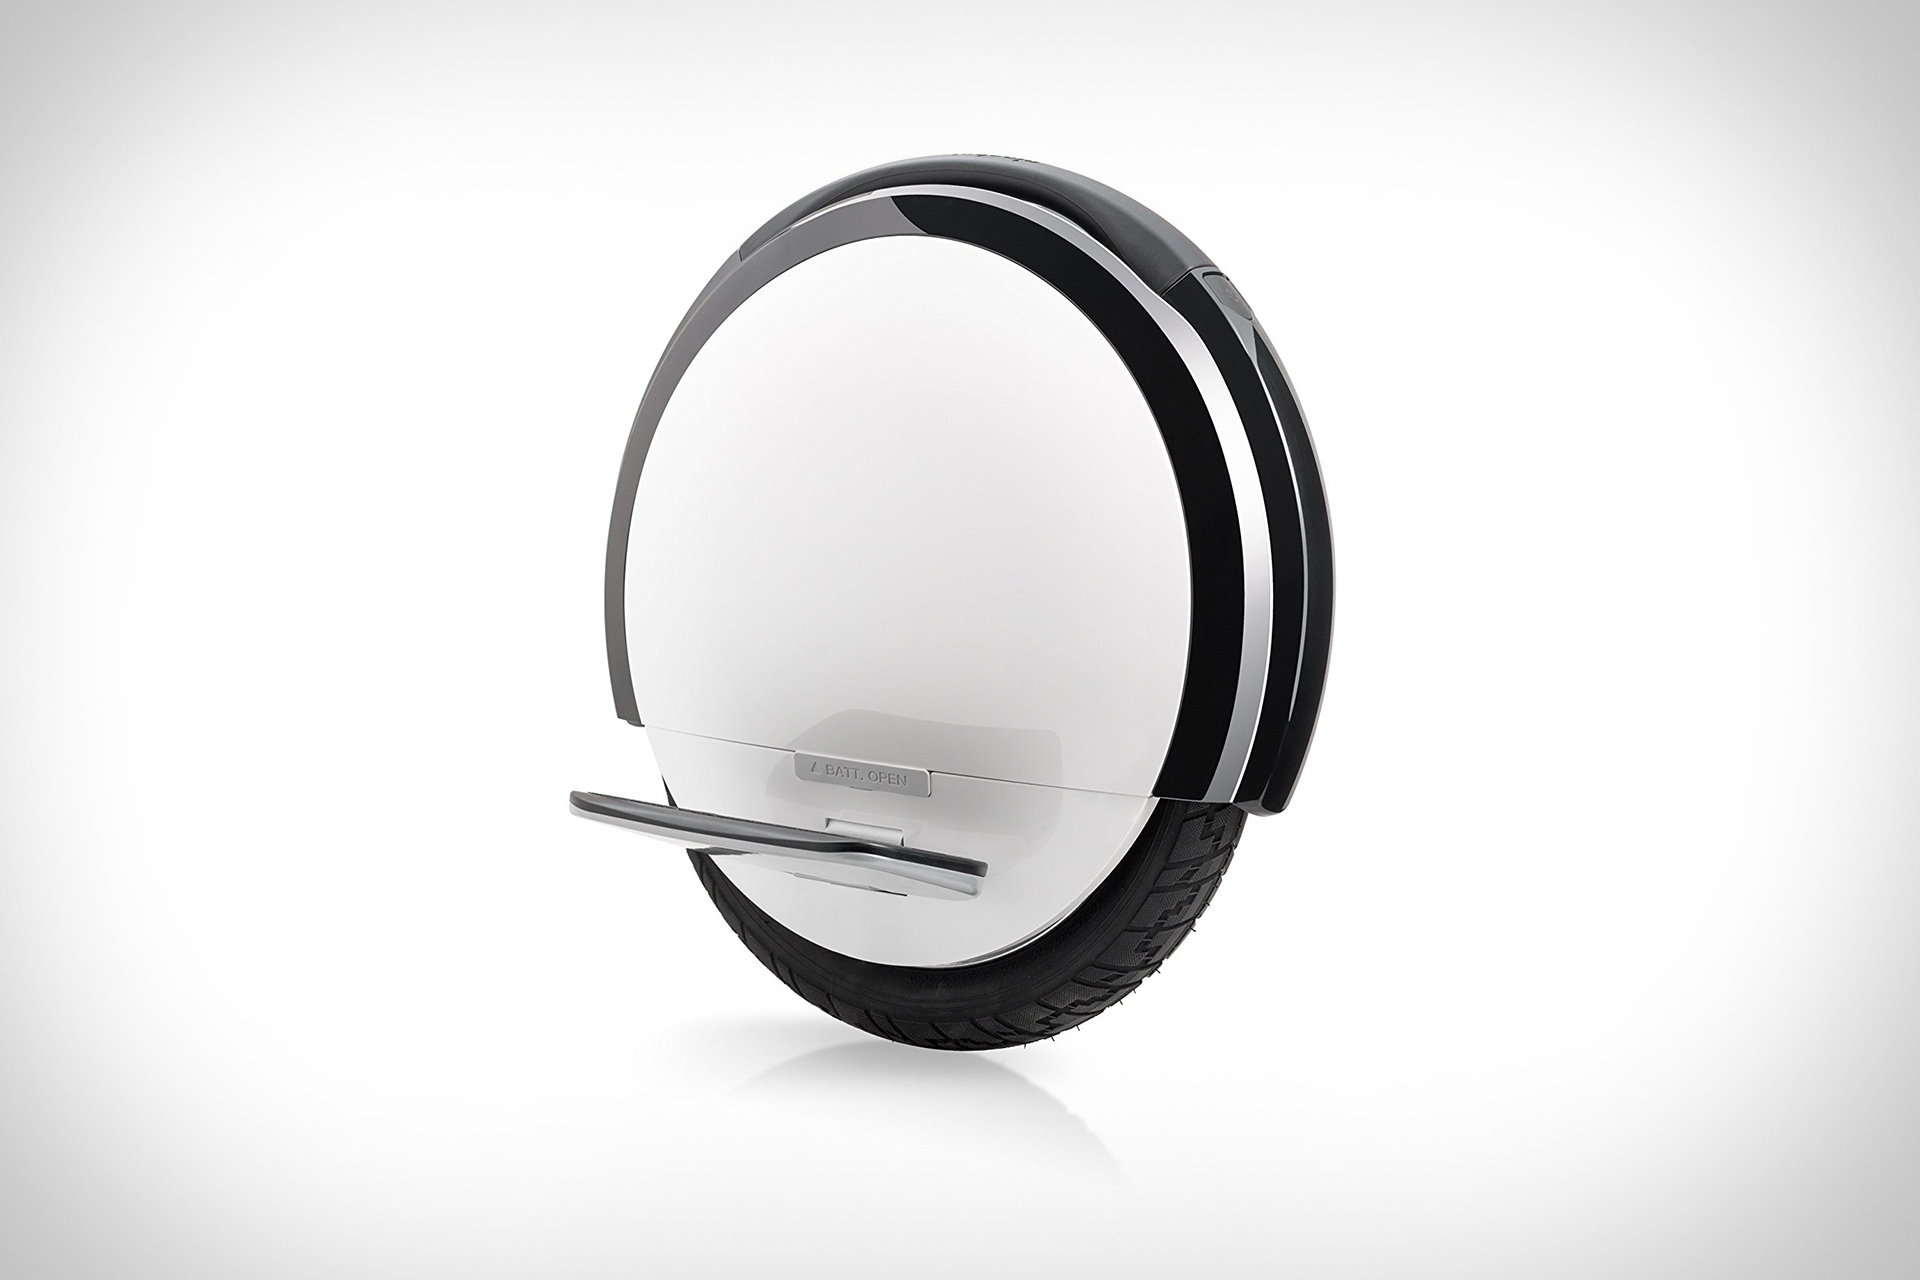 Le Segway One S1